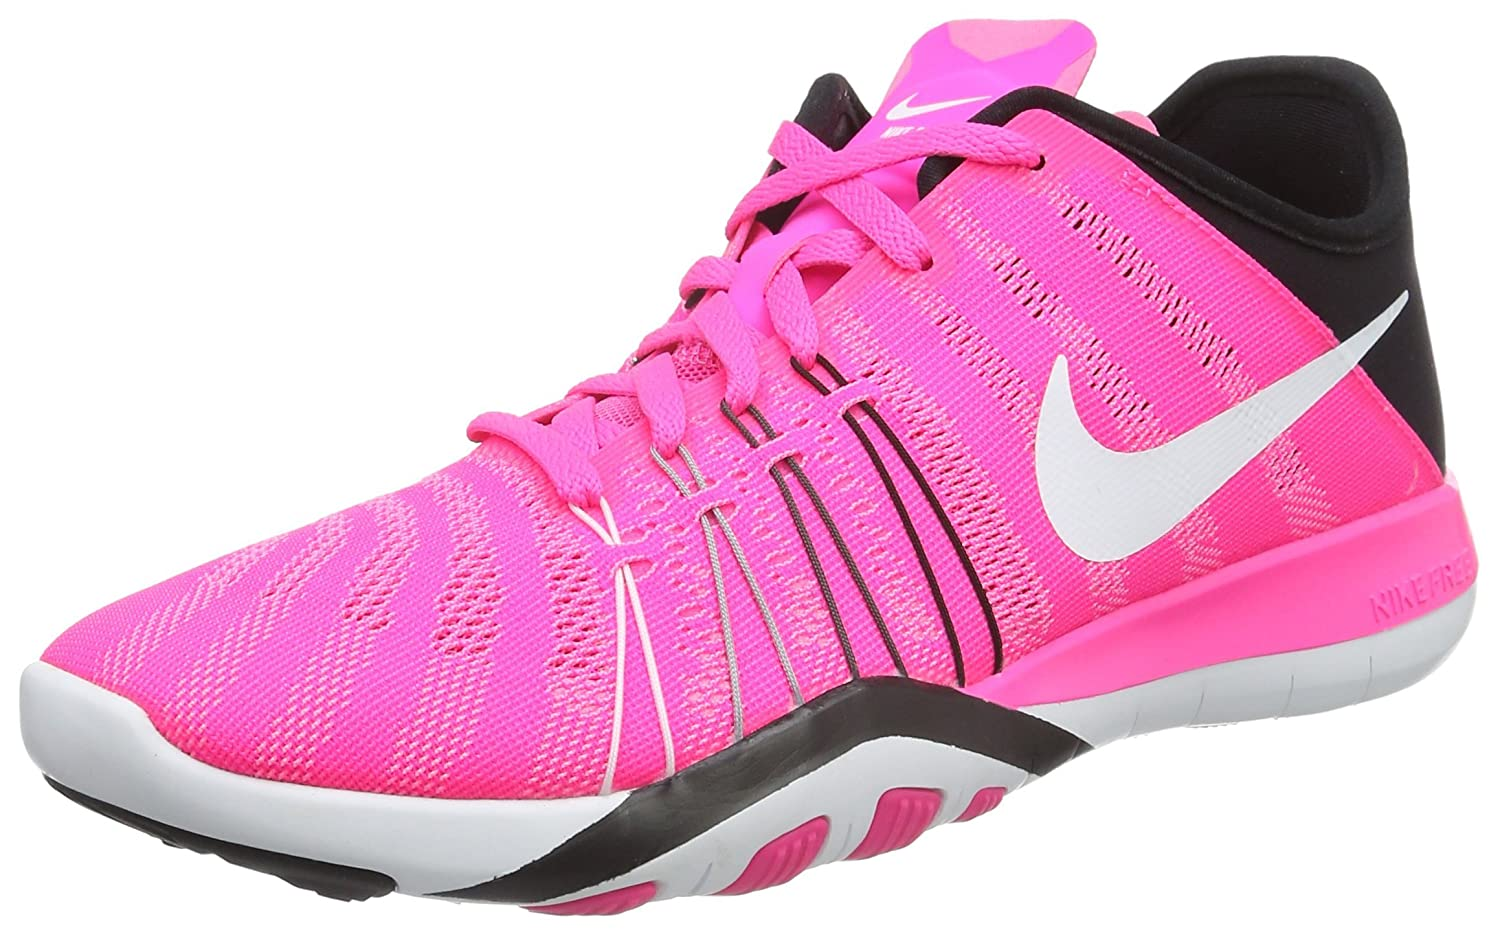 Womens Nike Free TR 6 Training Shoes B014GMYJOU 8.5 B(M) US|Pink Blast/Black/White